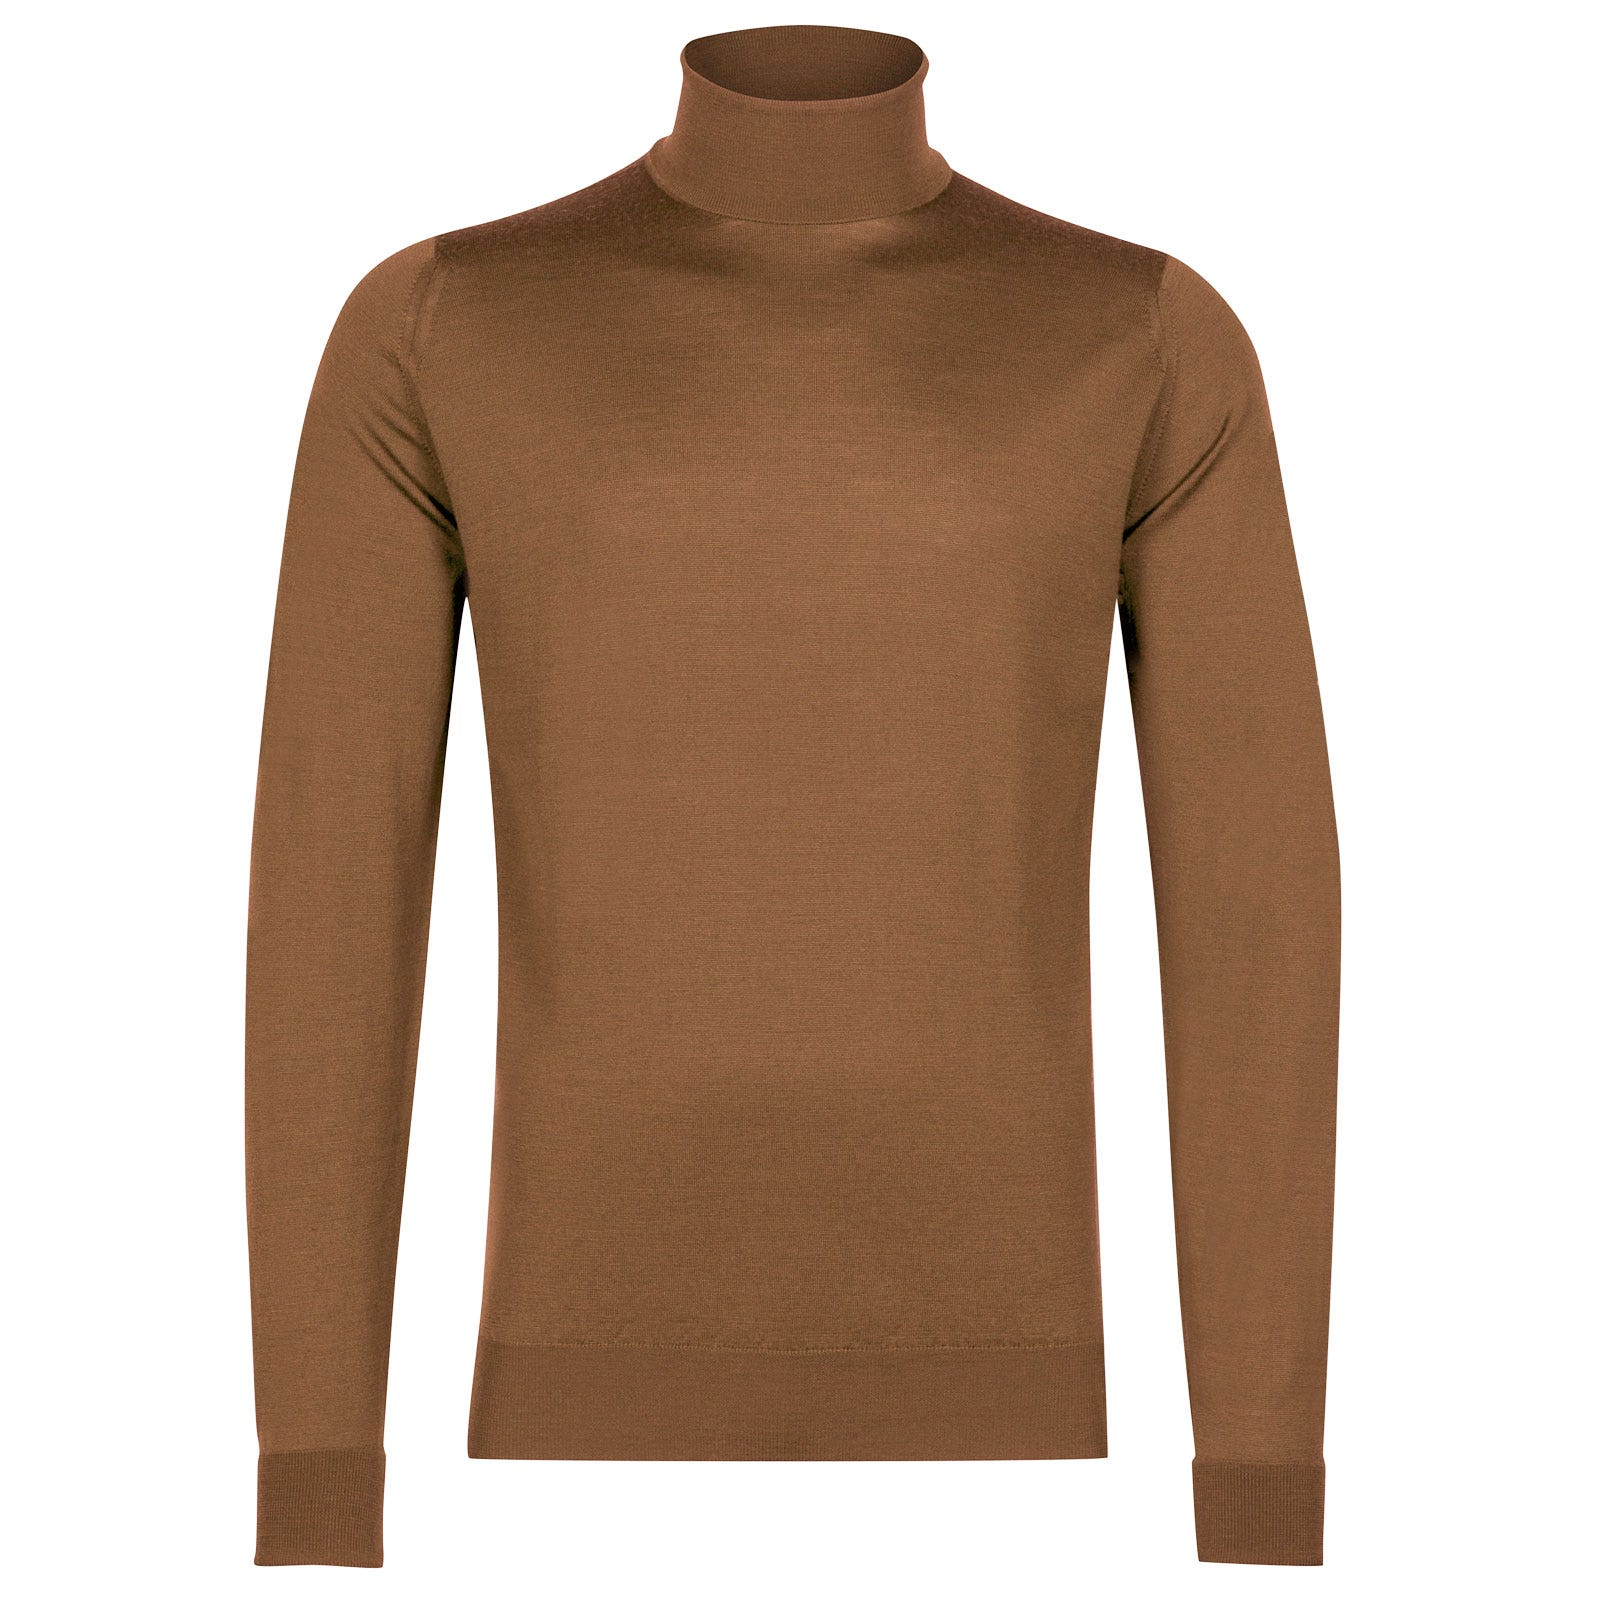 John Smedley richards Merino Wool Pullover in Camel-XS